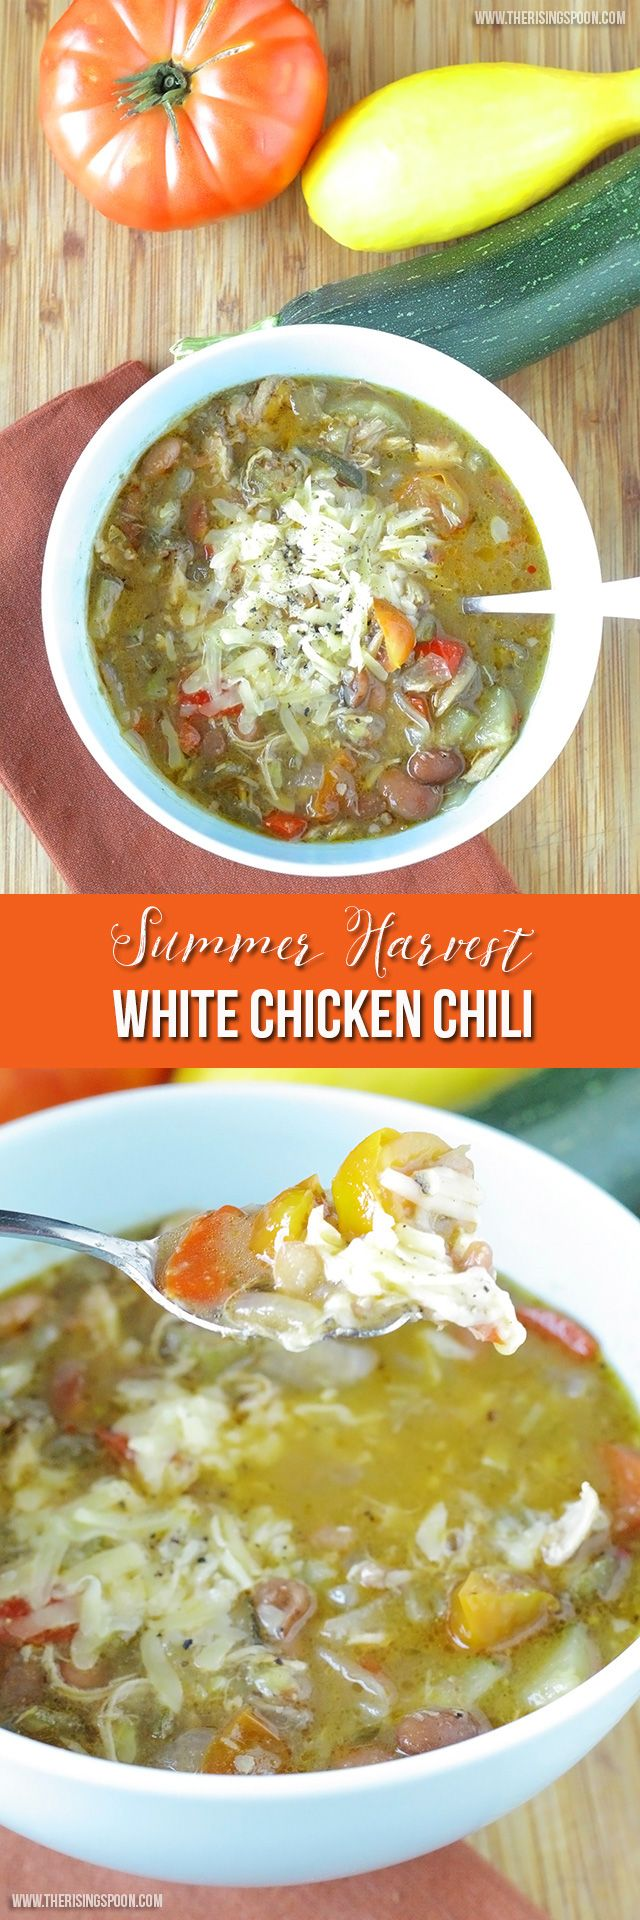 This is my GO-TO quick comfort food meal cause I can whip it together in about 30 minutes tops! It's an easy white chicken chili recipe featuring fresh or frozen summer vegetables like zucchini, okra, and tomatoes + bell peppers, onions, creamy white beans, and shredded chicken all floating in a savory broth.